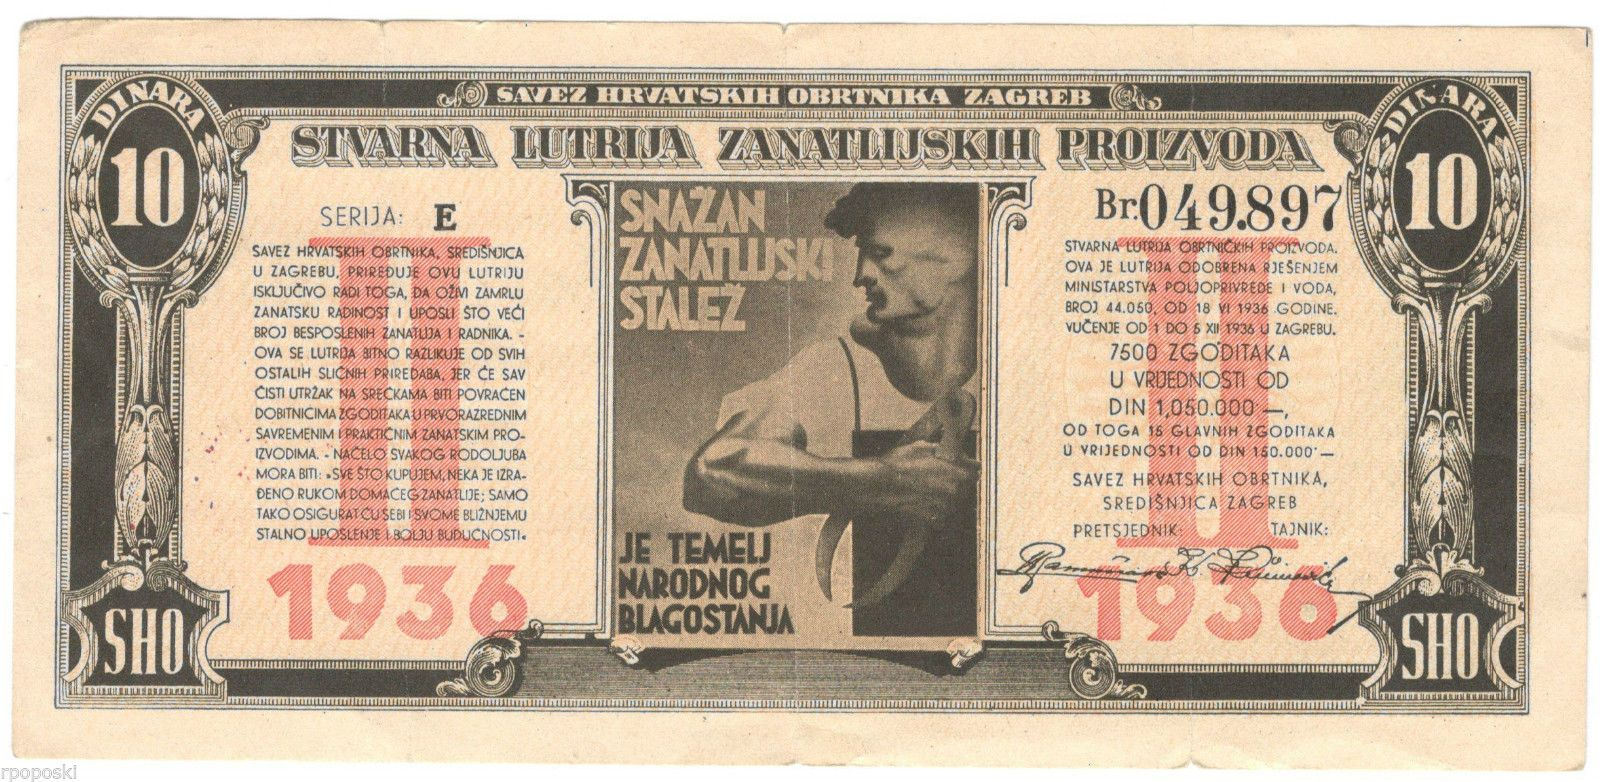 Art Deco Style Lottery Ticket Union Of Croatian Artisans Zagreb 1936 Art Deco Fashion Art Deco Lottery Tickets